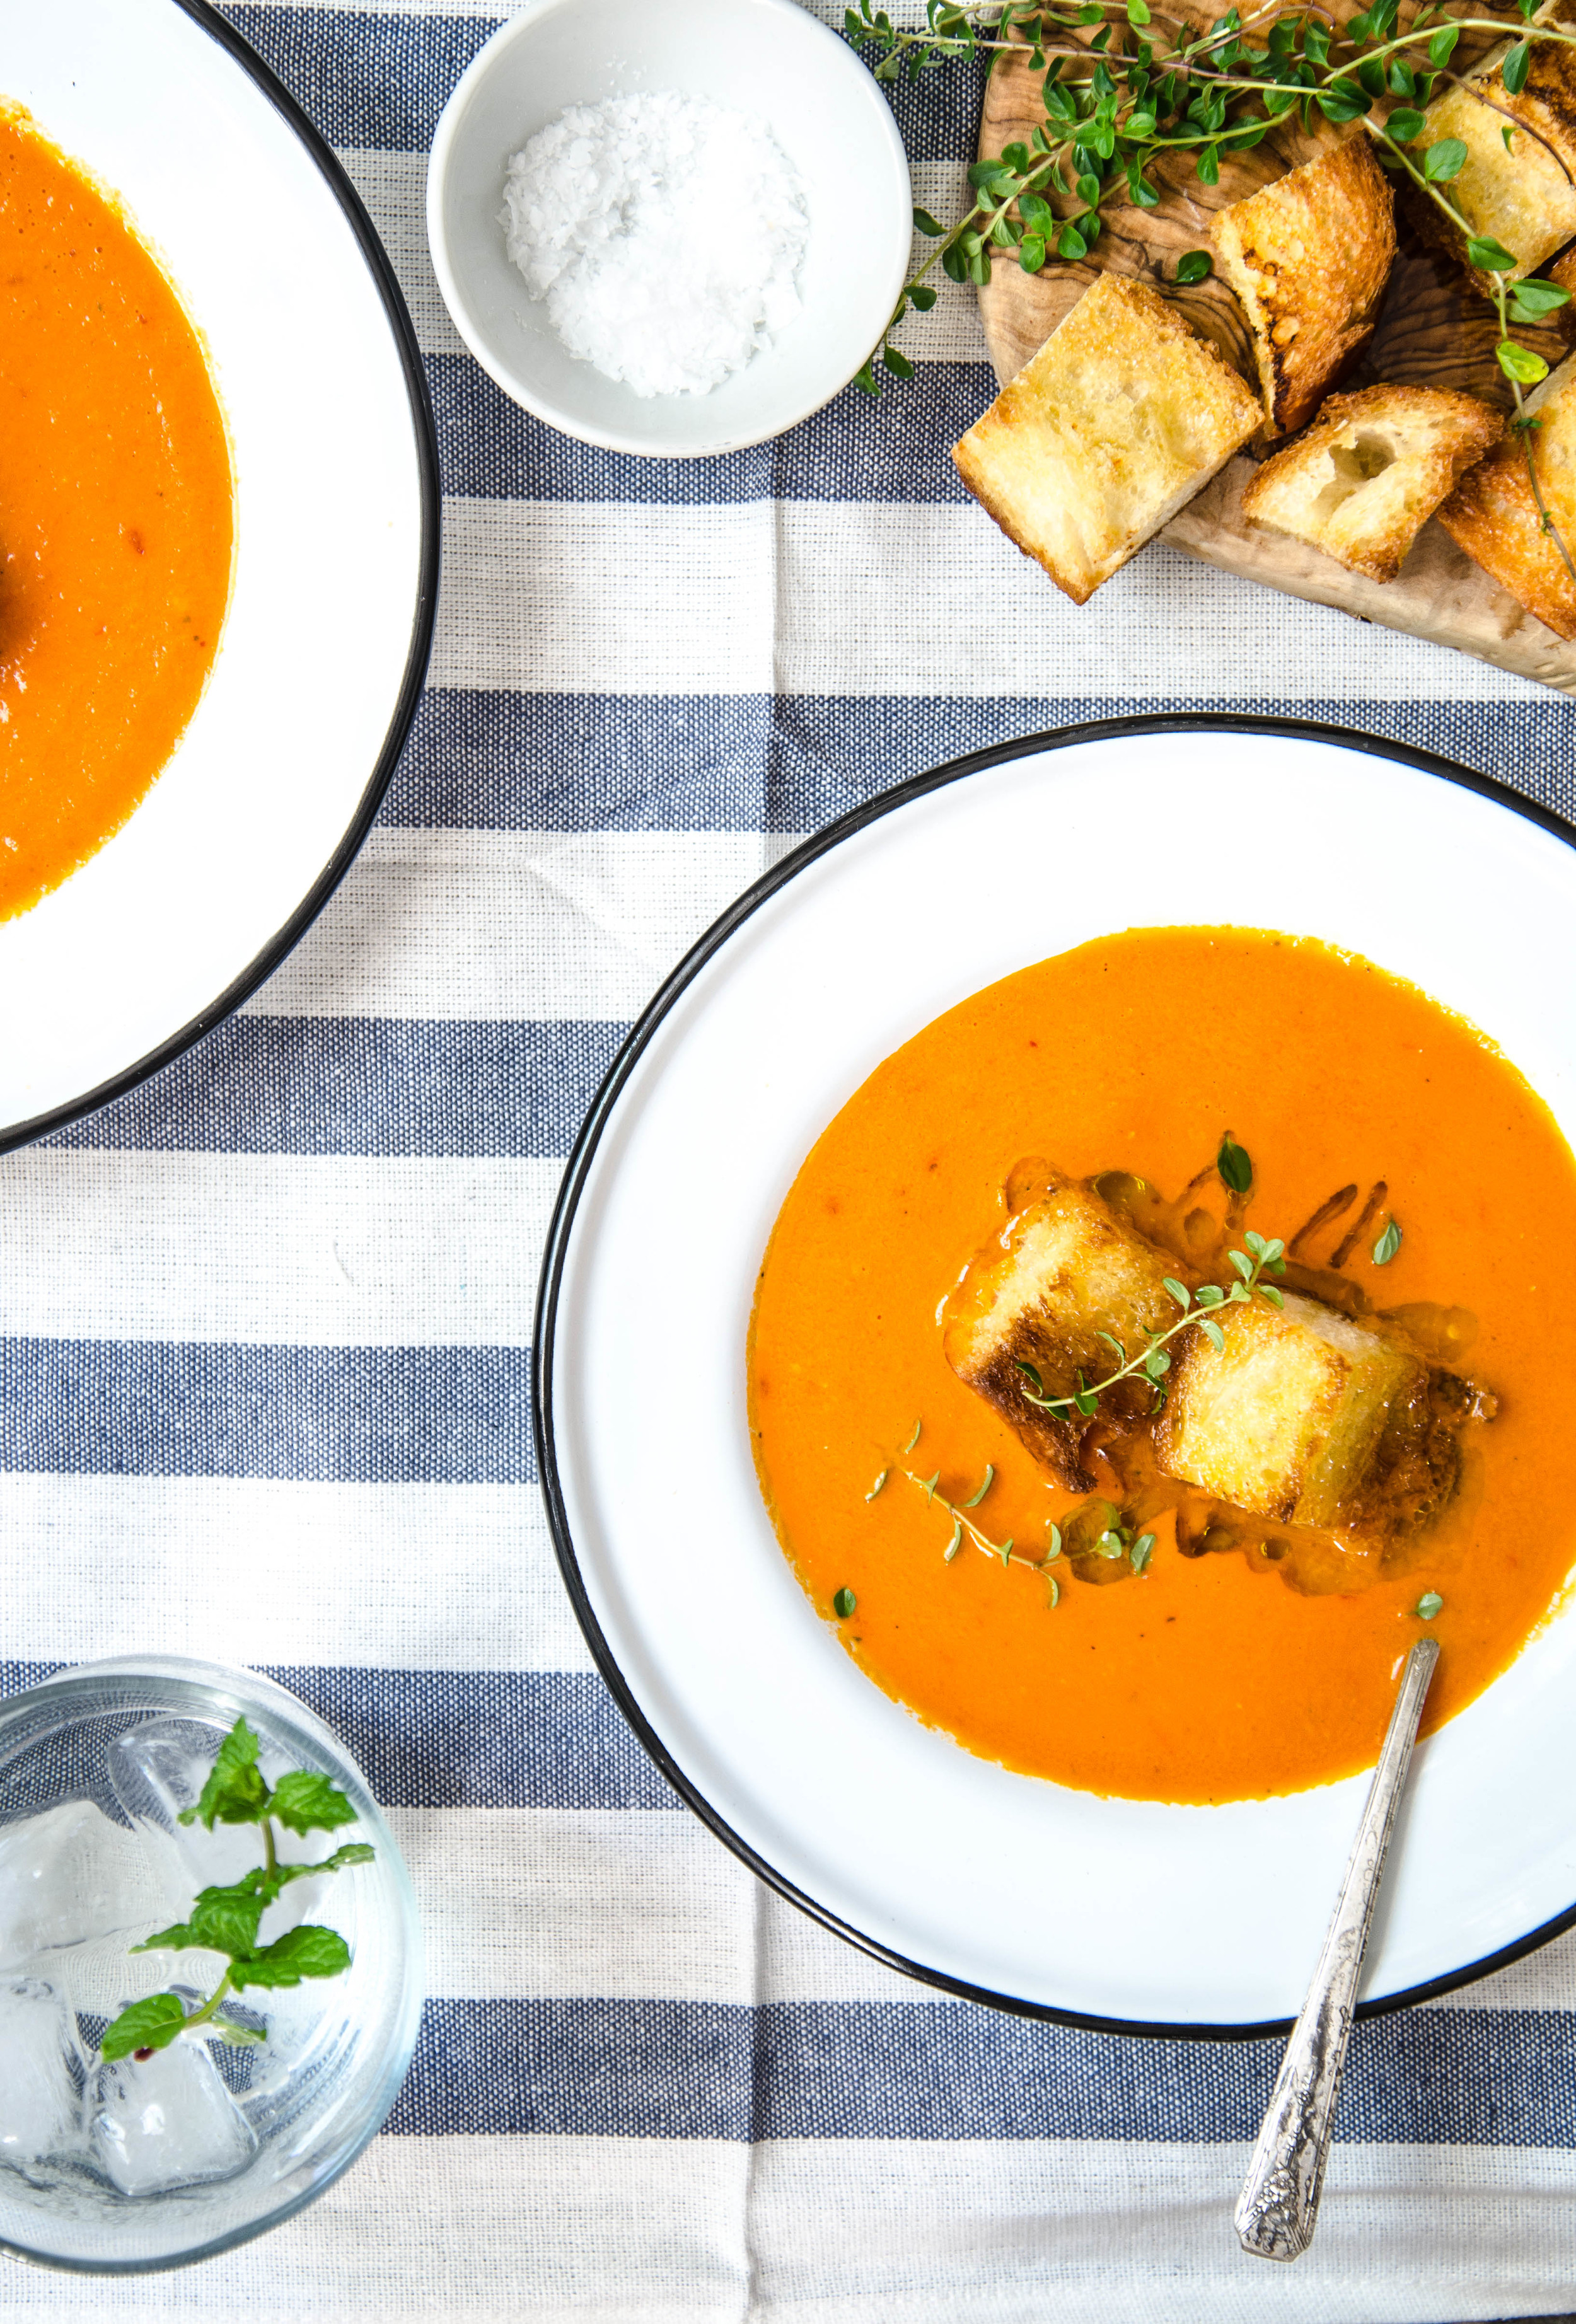 ROSE & IVY Journal  Roasted Tomato Soup